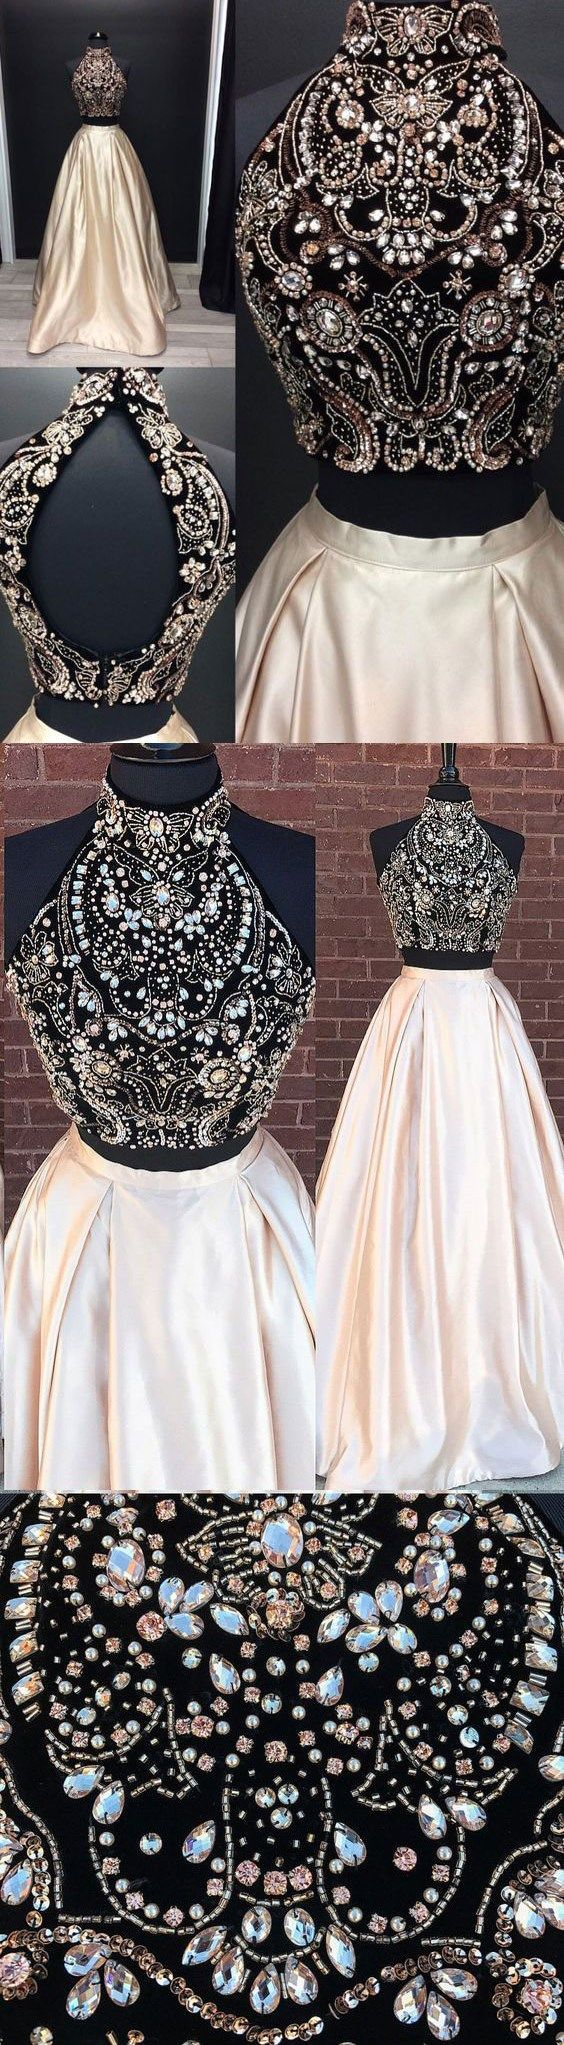 2018 Beading Two Pieces Sparkly Open Back Halt Prom Dresses, Popular Fashion Prom Dress for party, PD0372  #charmingdressy#promdresses#popular #homecomingdresses